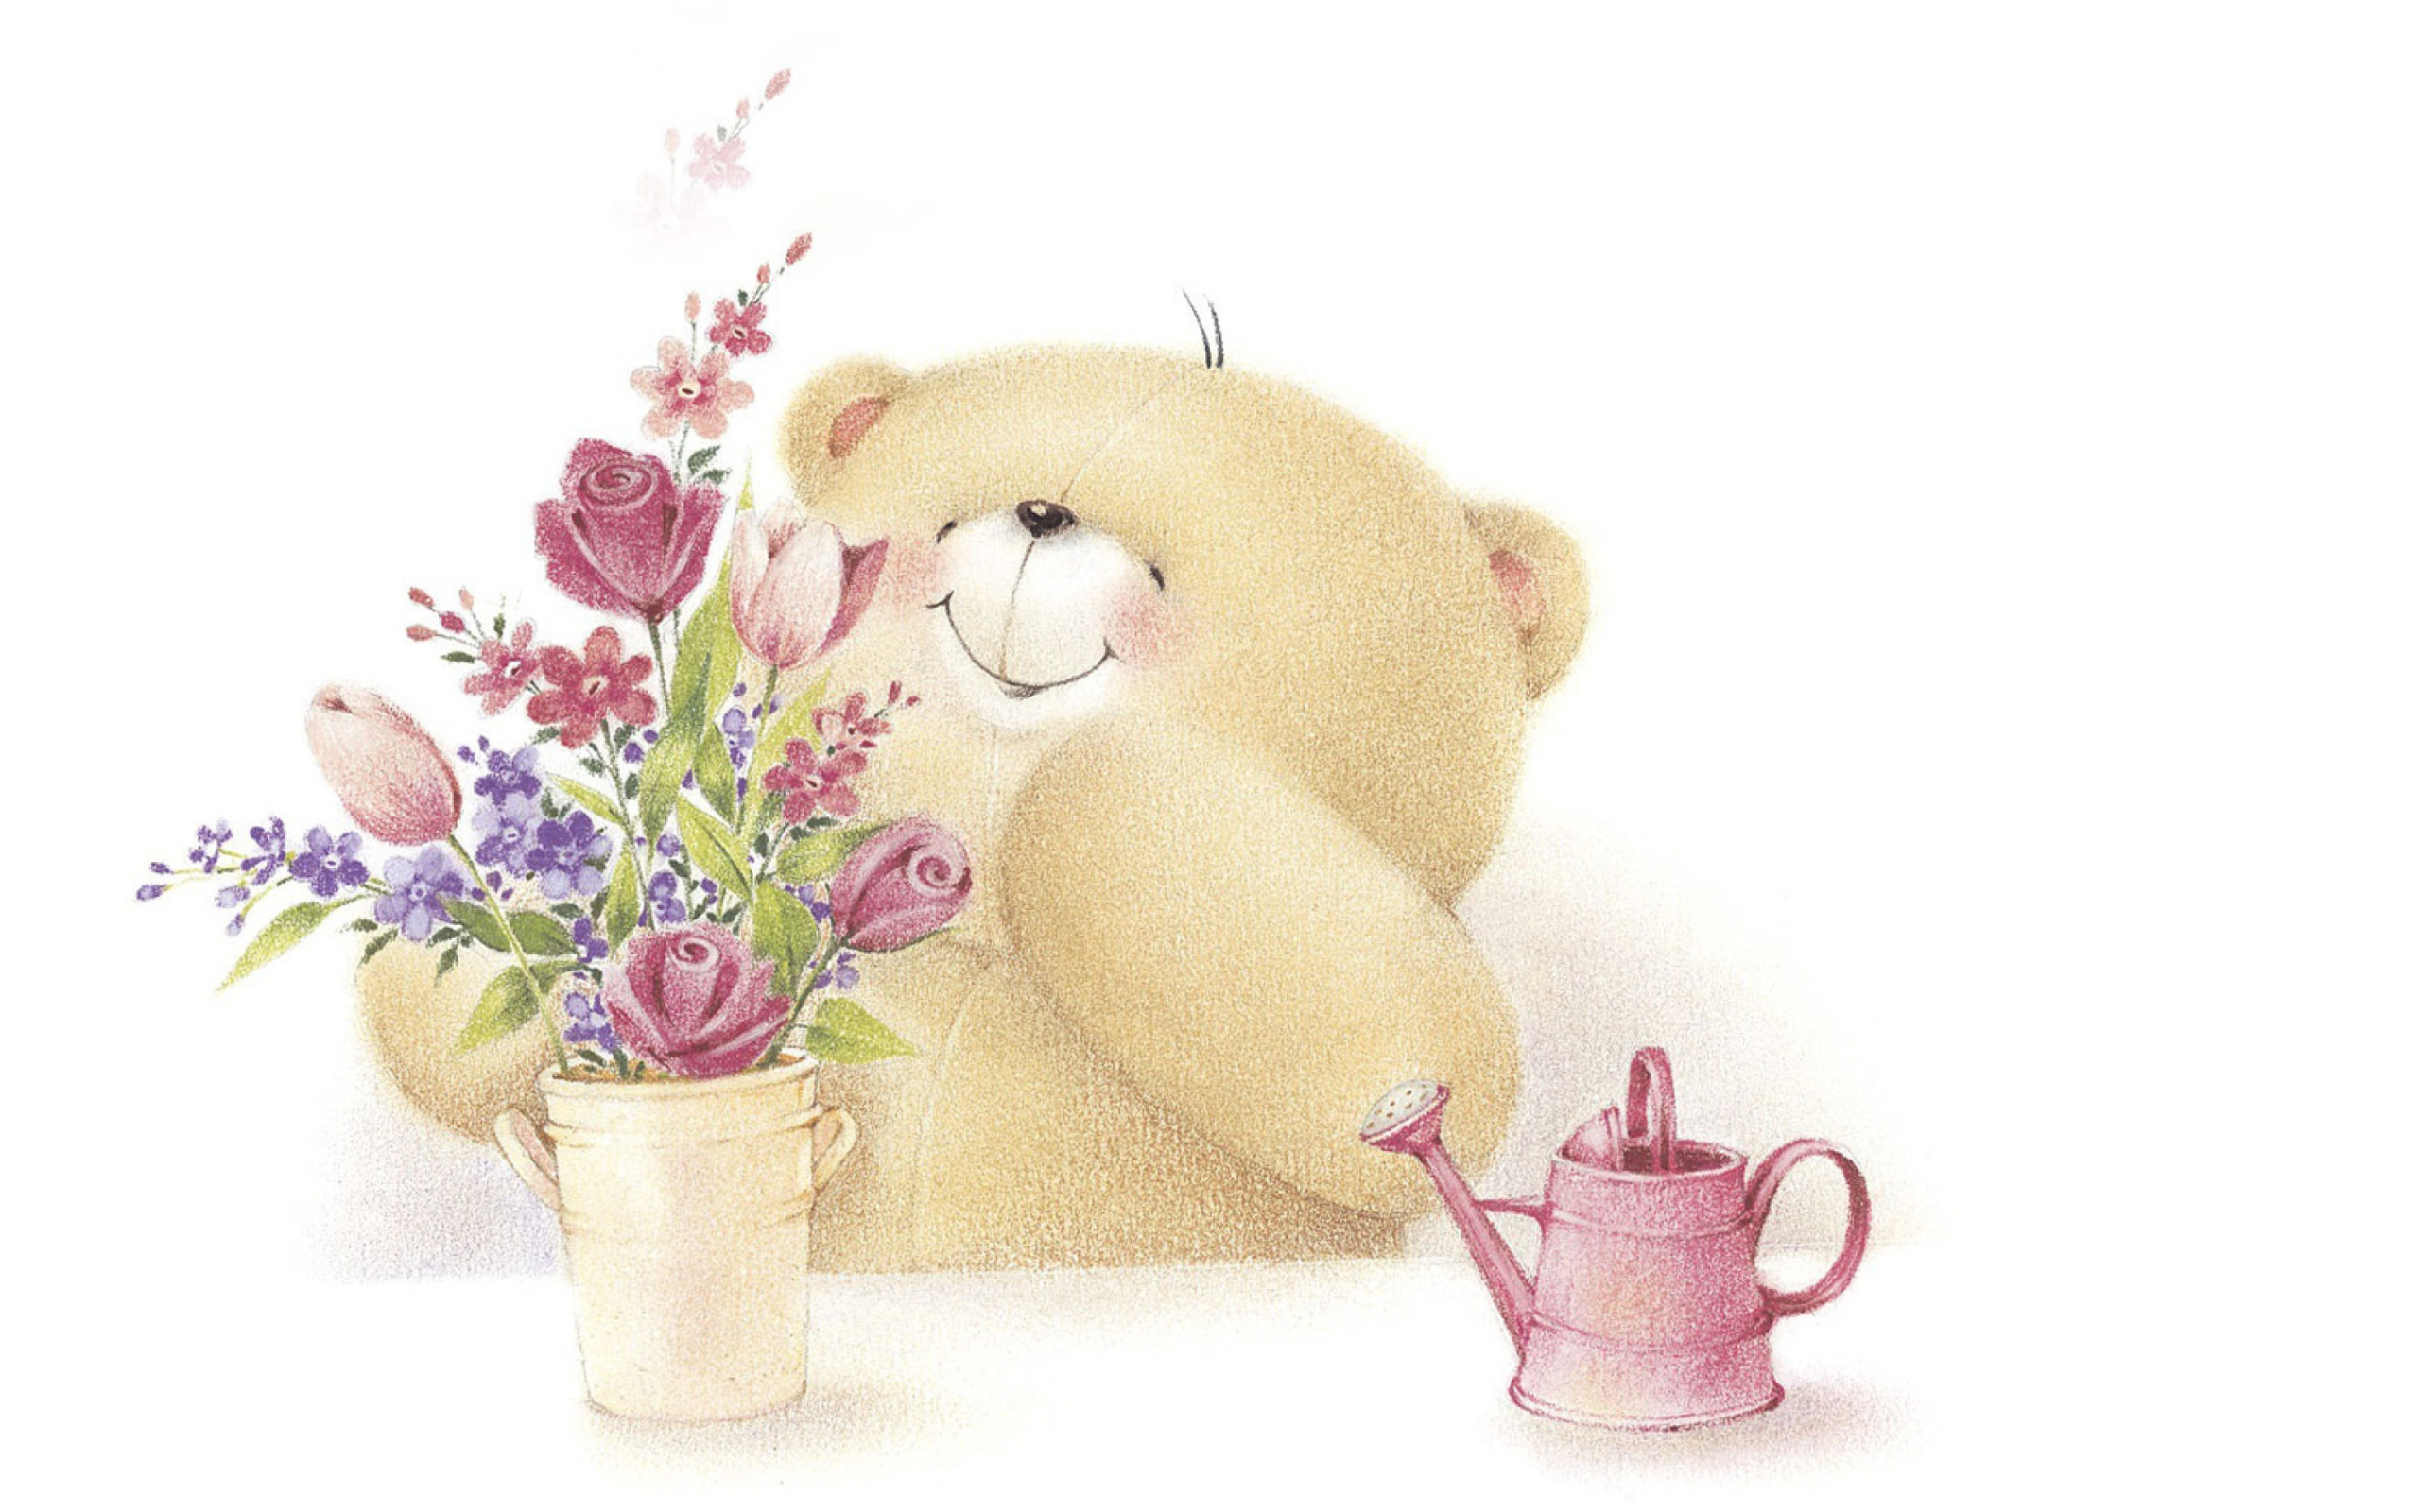 A Girly Girl Wallpapers Forever Friends Teddy Bear Love Flowers Wallpaper